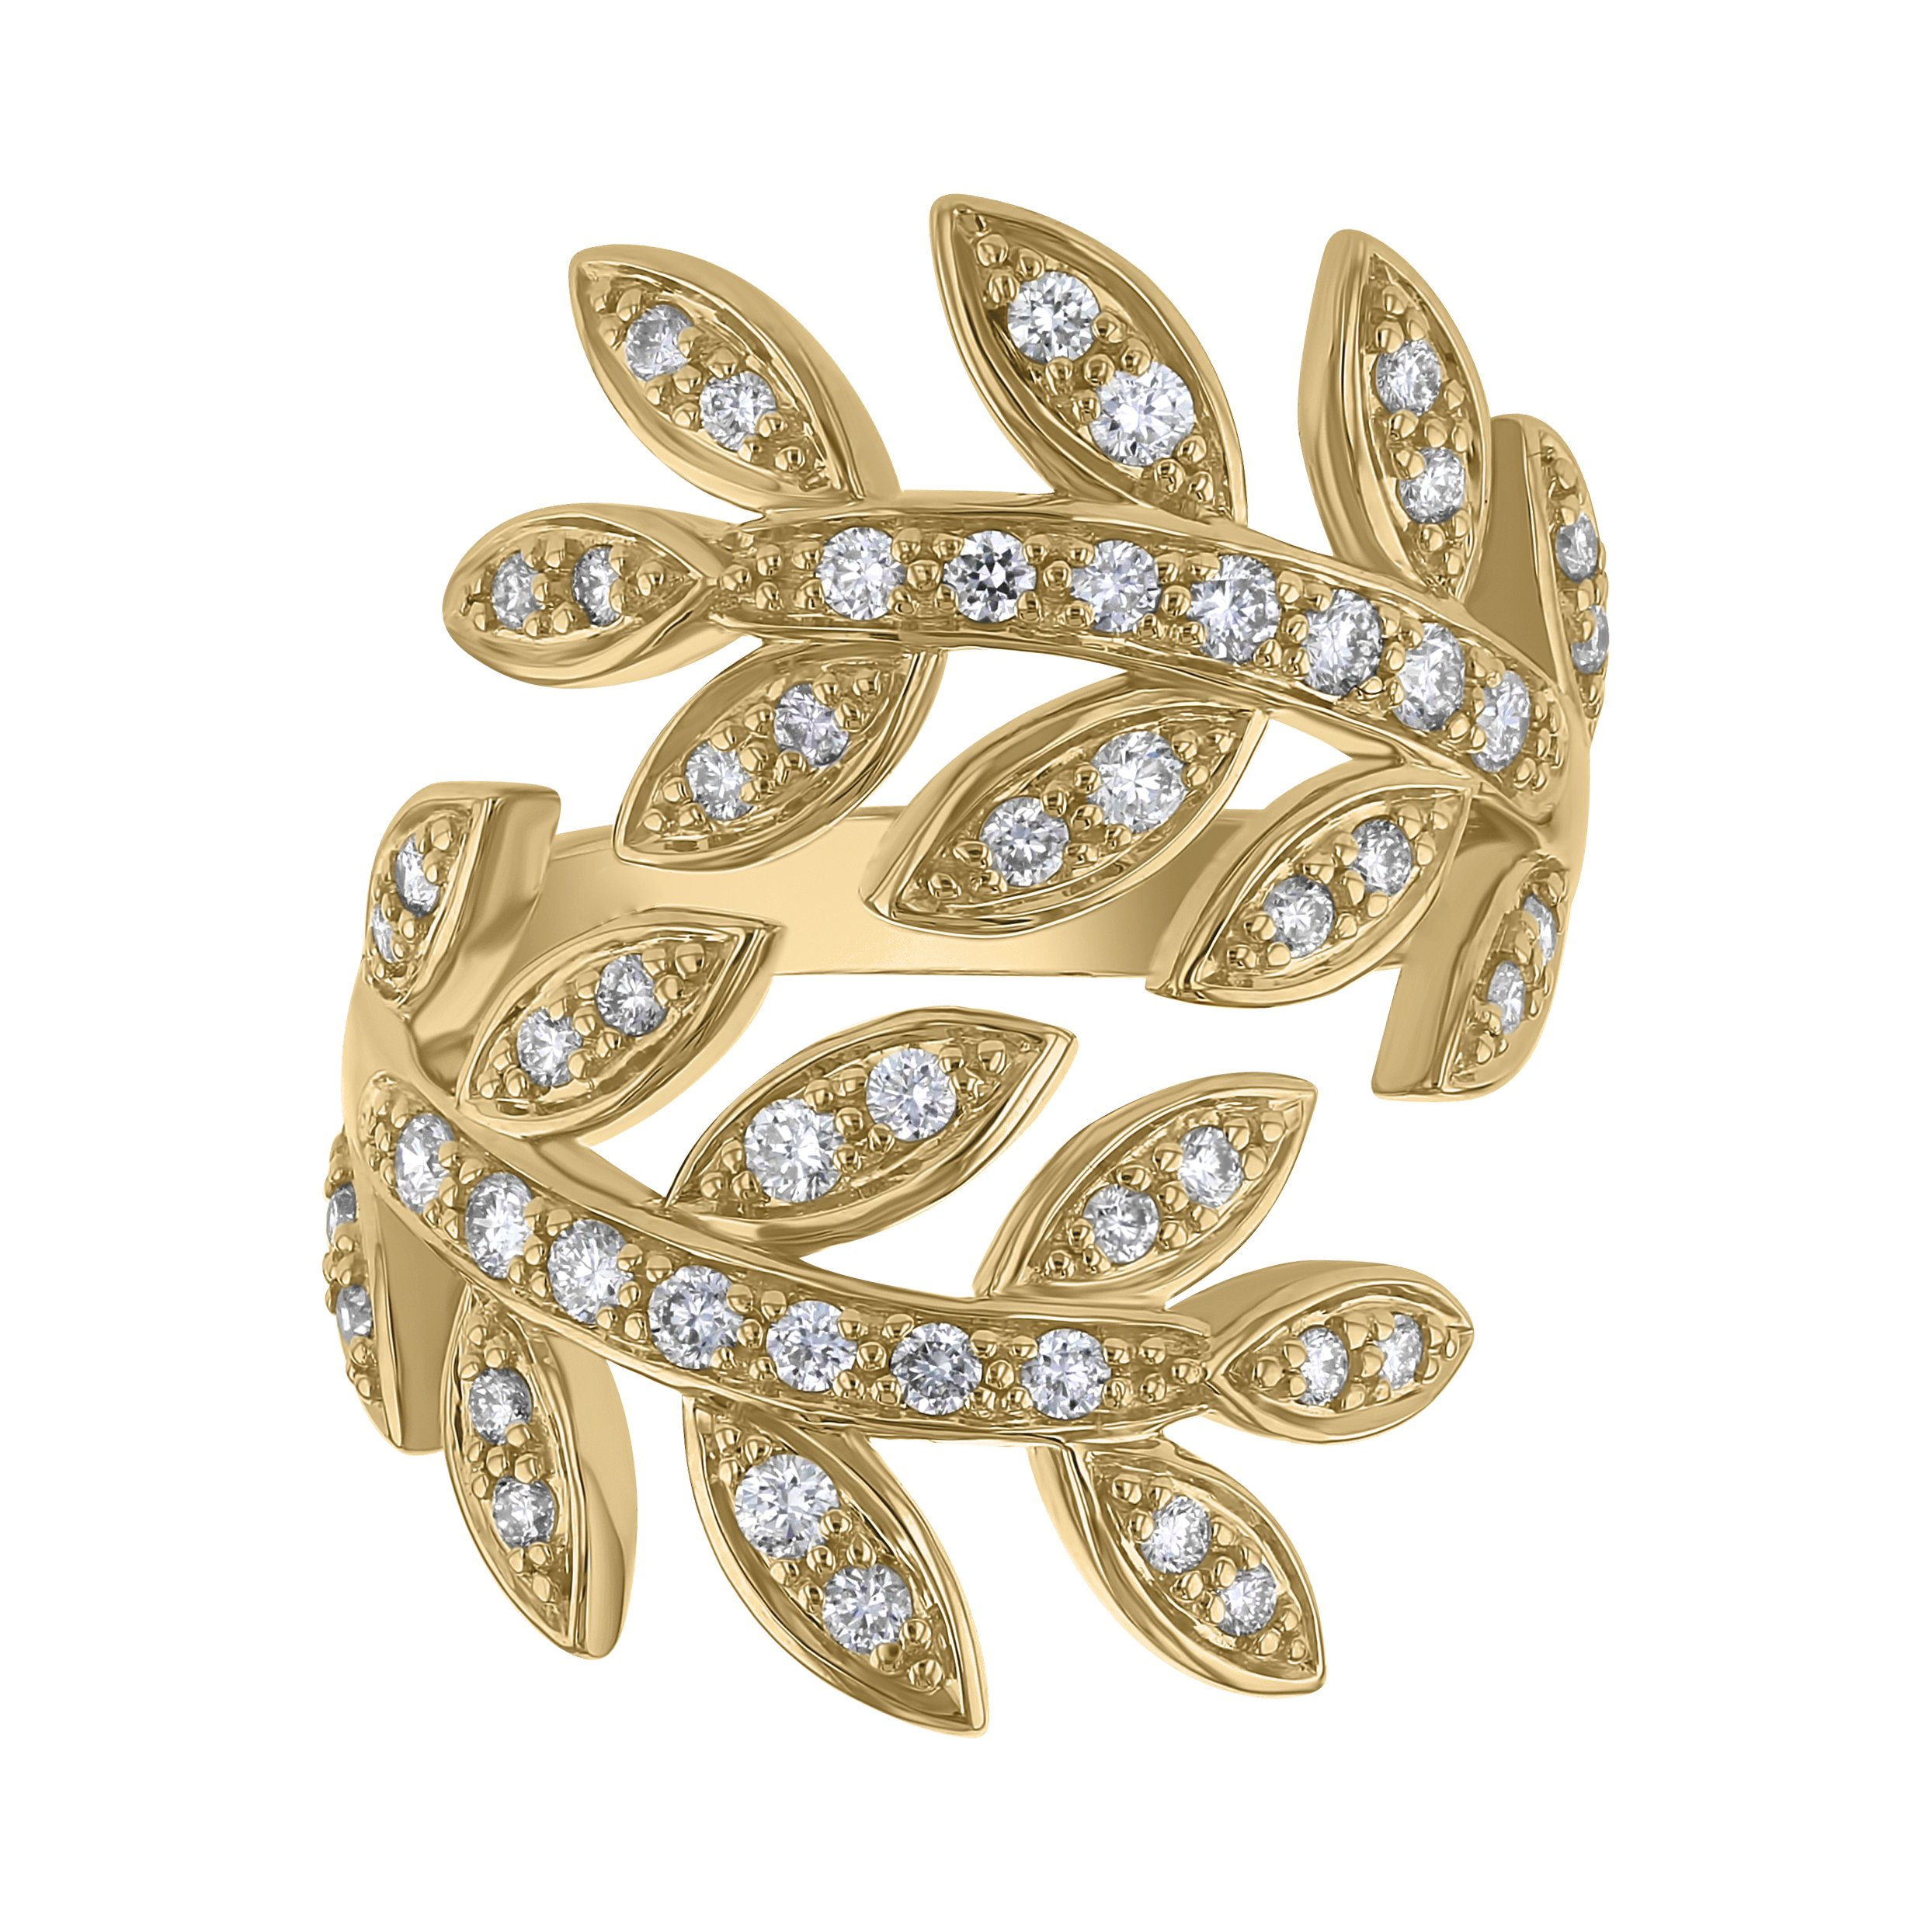 14k Yellow Gold Diamond Leaf Bypass Ring (0.65 cttw, I1 ClarIty, H-I Color)